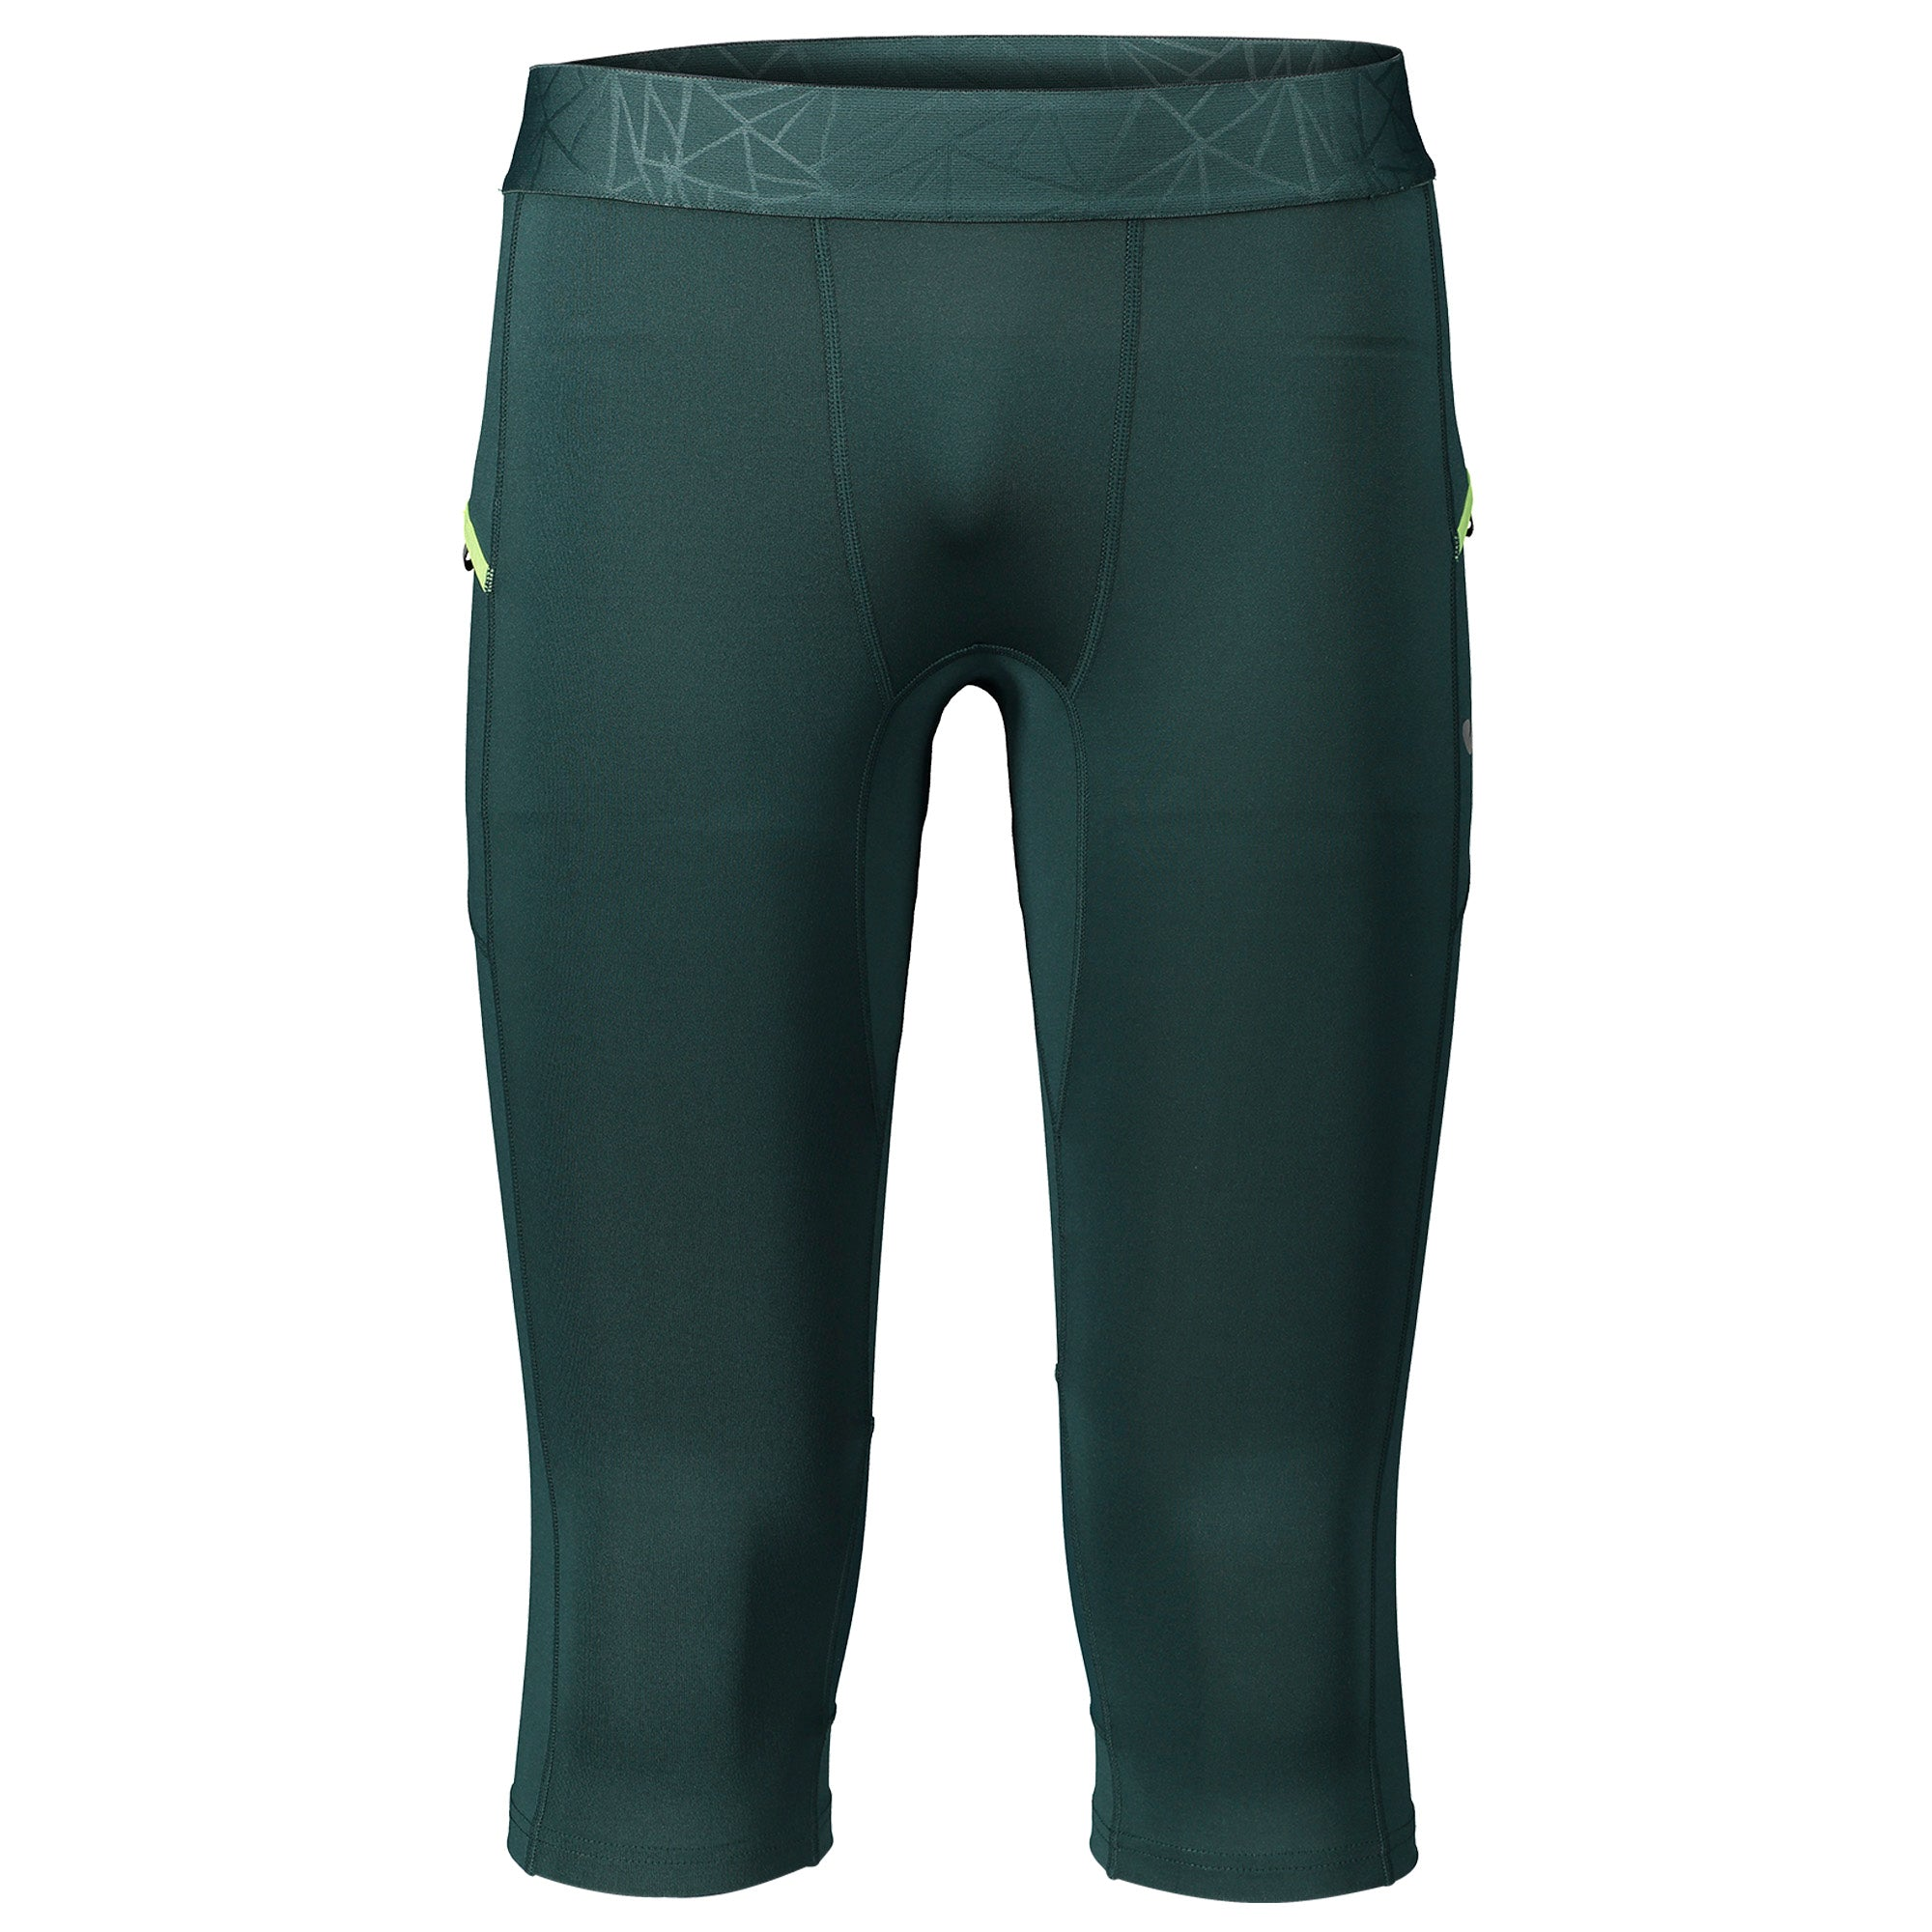 Pantalone Pirata Running Flash Verde